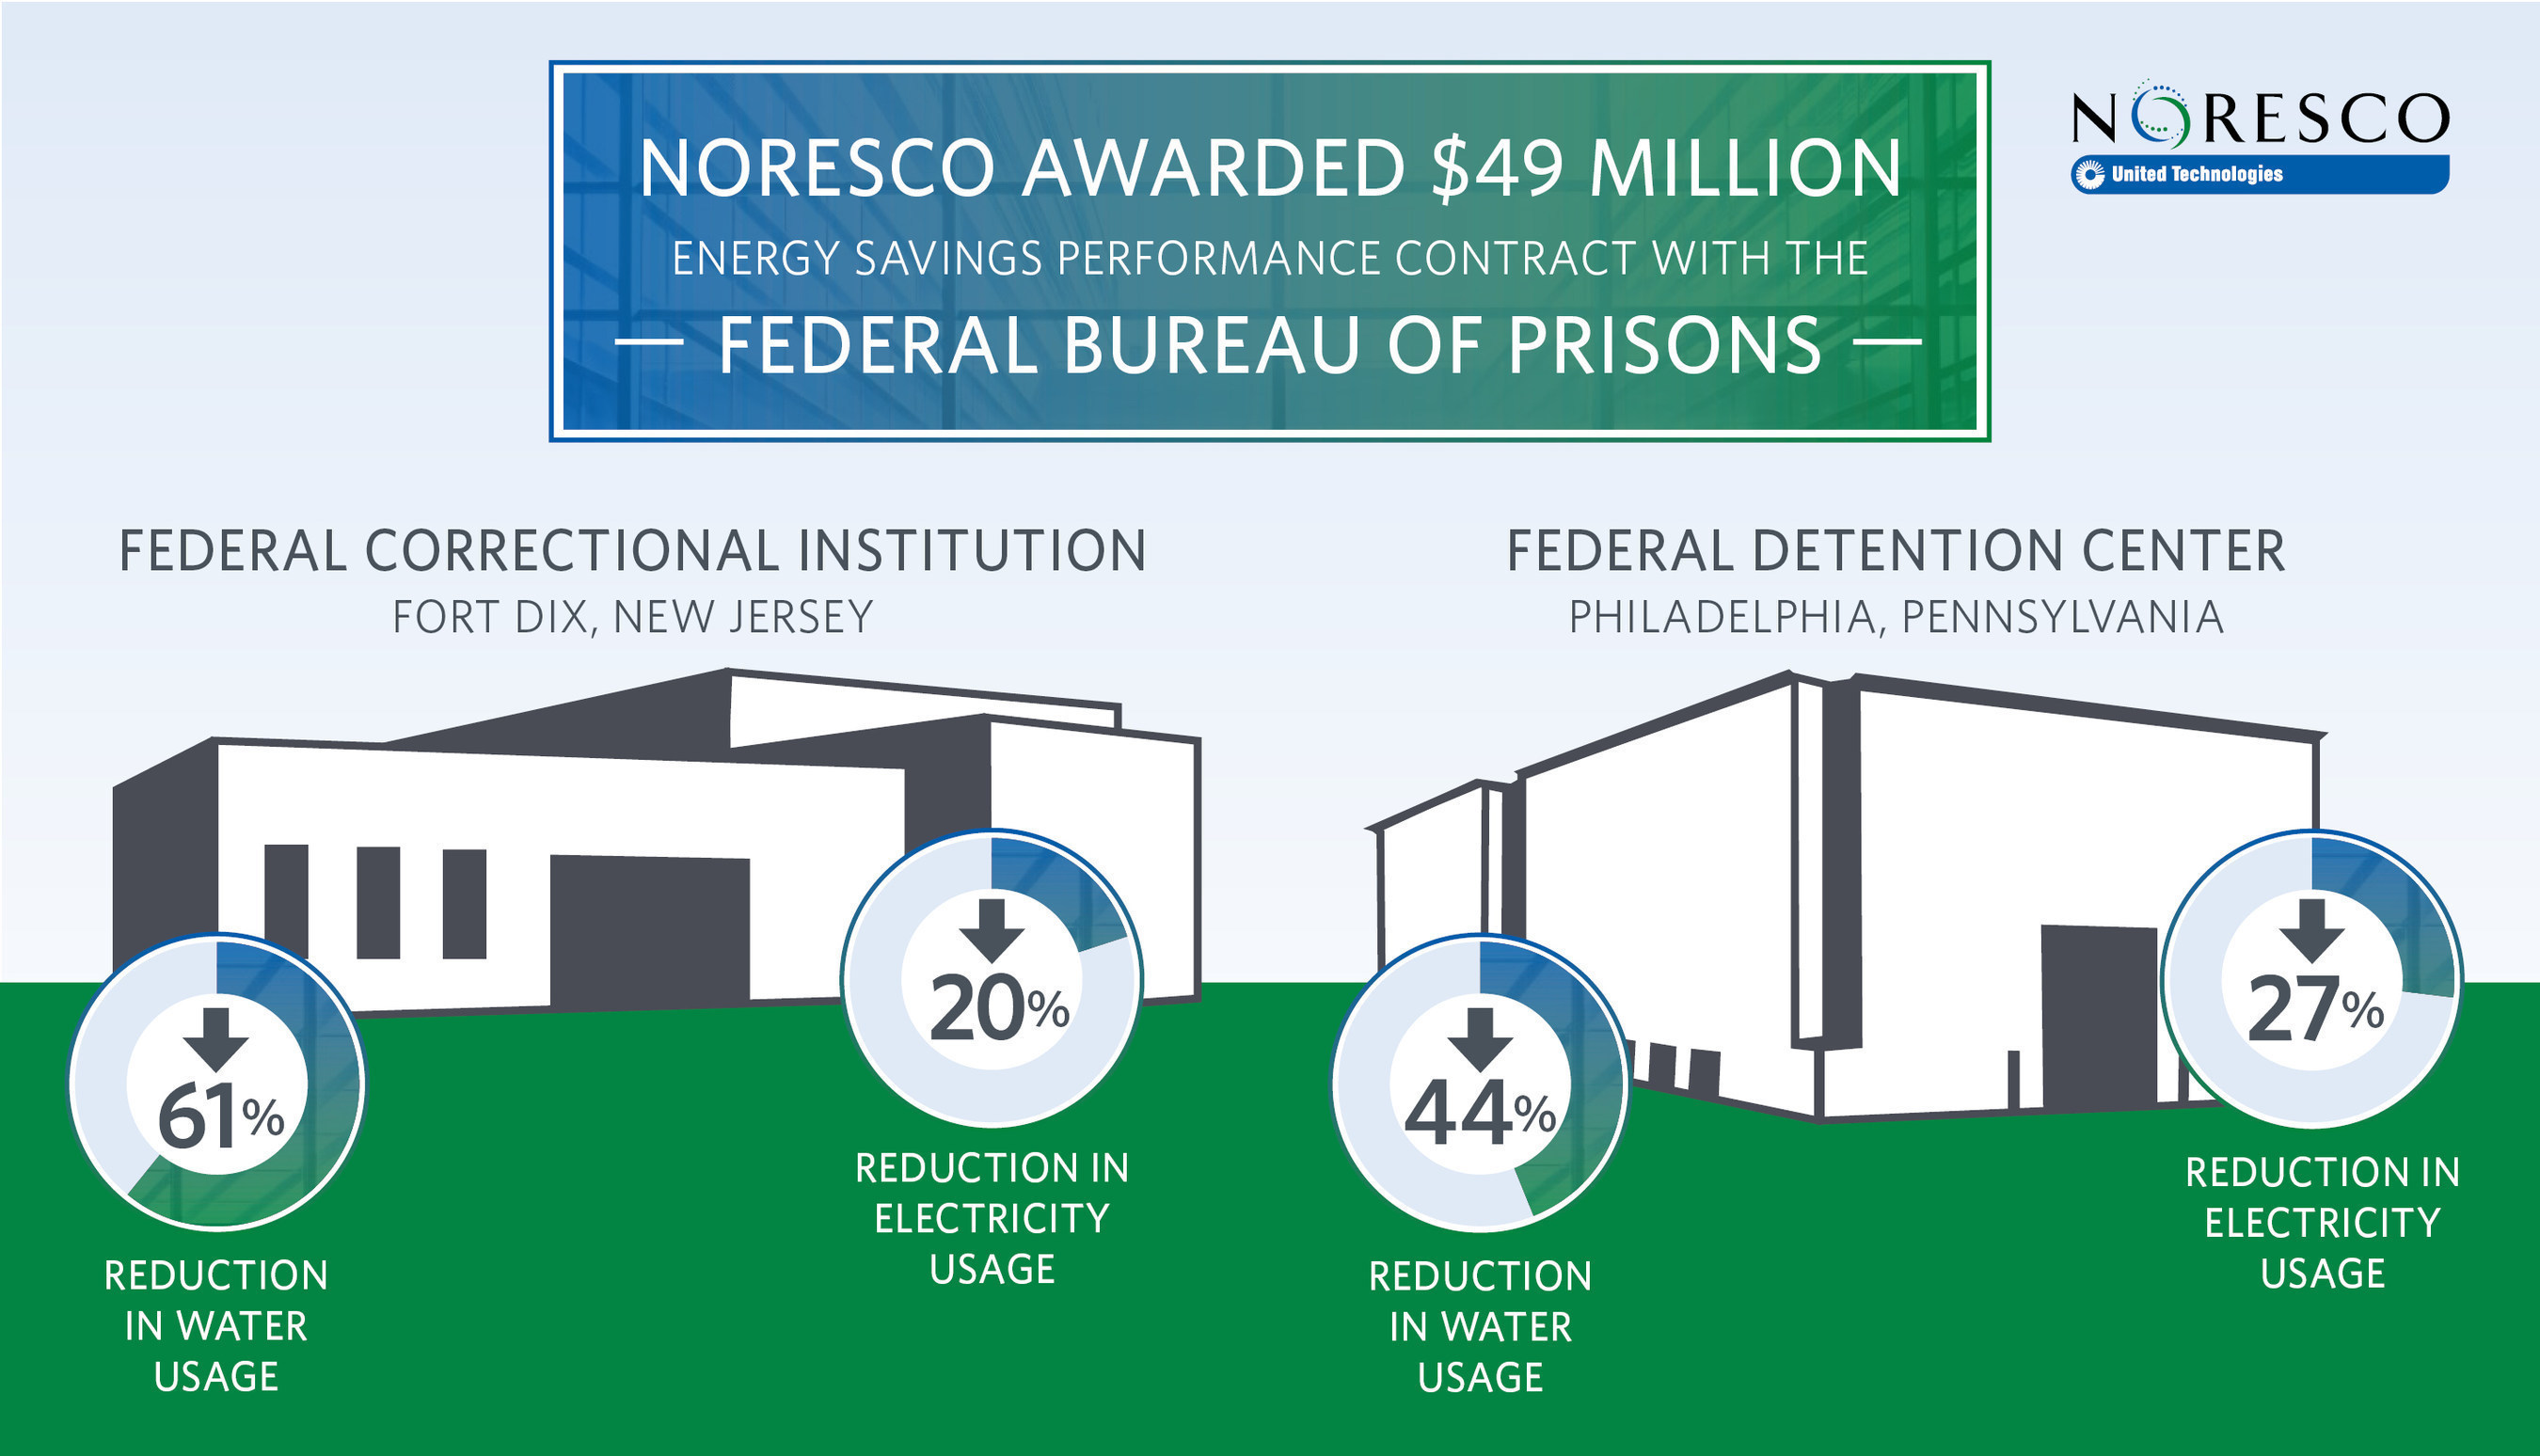 NORESCO, a national leader in energy efficiency and energy infrastructure solutions, will provide energy and water efficiency and capital infrastructure upgrades at two Federal Bureau of Prisons sites: Federal Correctional Institution (FCI) Fort Dix, New Jersey, and Federal Detention Center (FDC) Philadelphia.